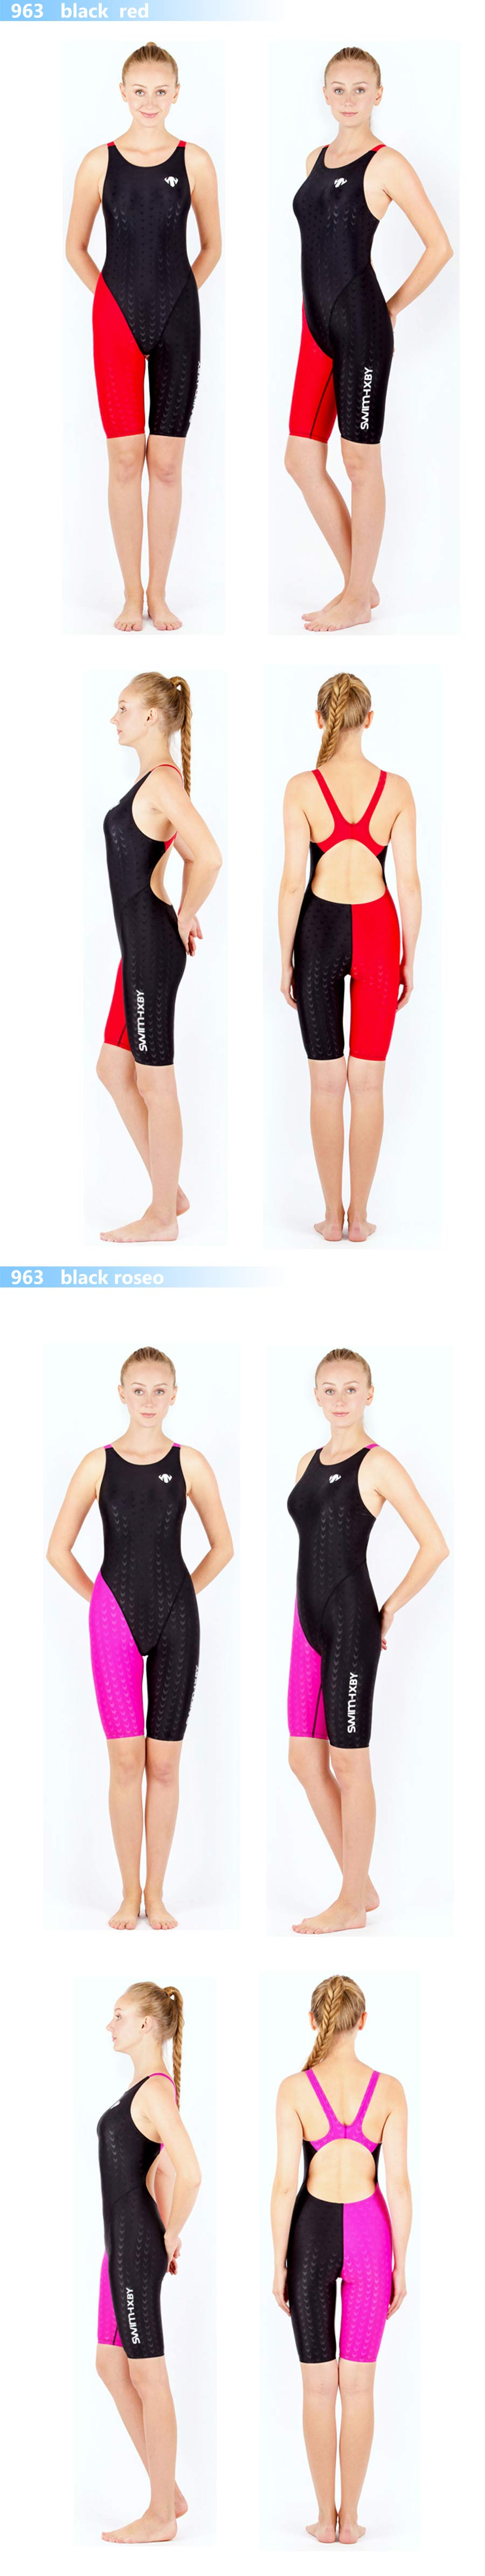 HXBY swimwear girls racing swimsuits sharkskin professional swimsuits knee one piece competition swim suits one piece 3